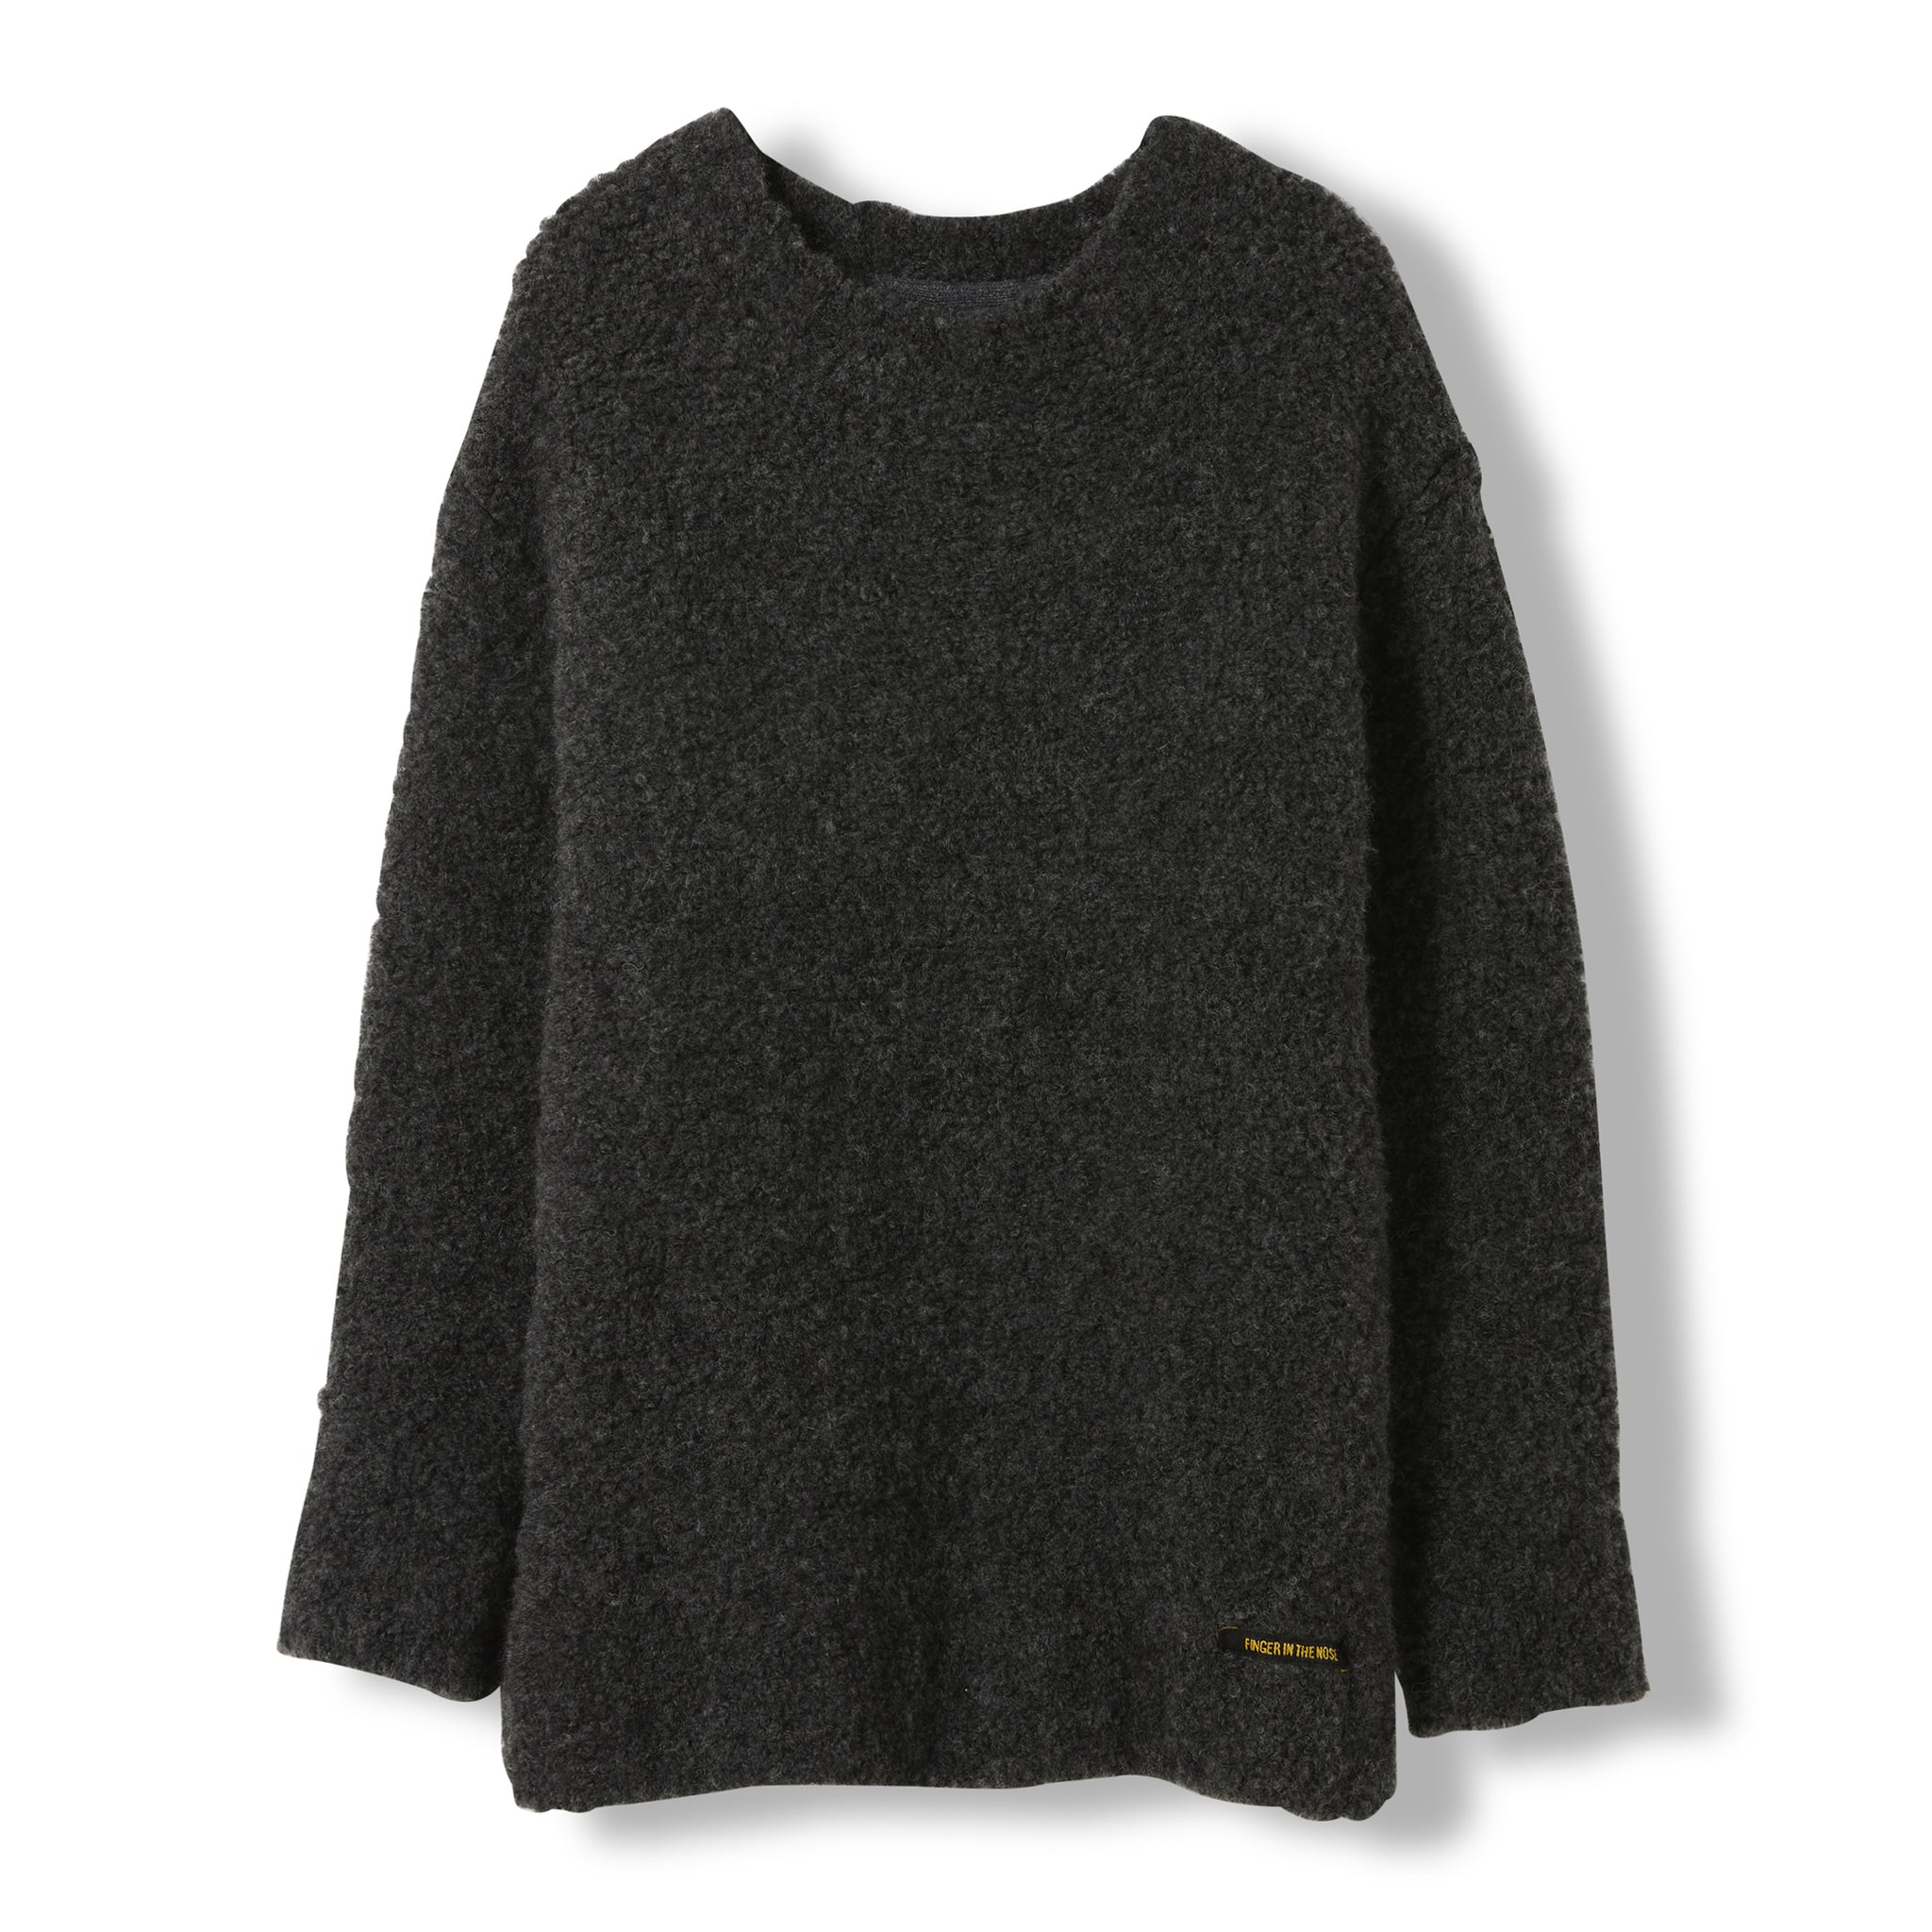 SKYLAR Dark Grey -  Heavy Knitted Oversized Jumper 2